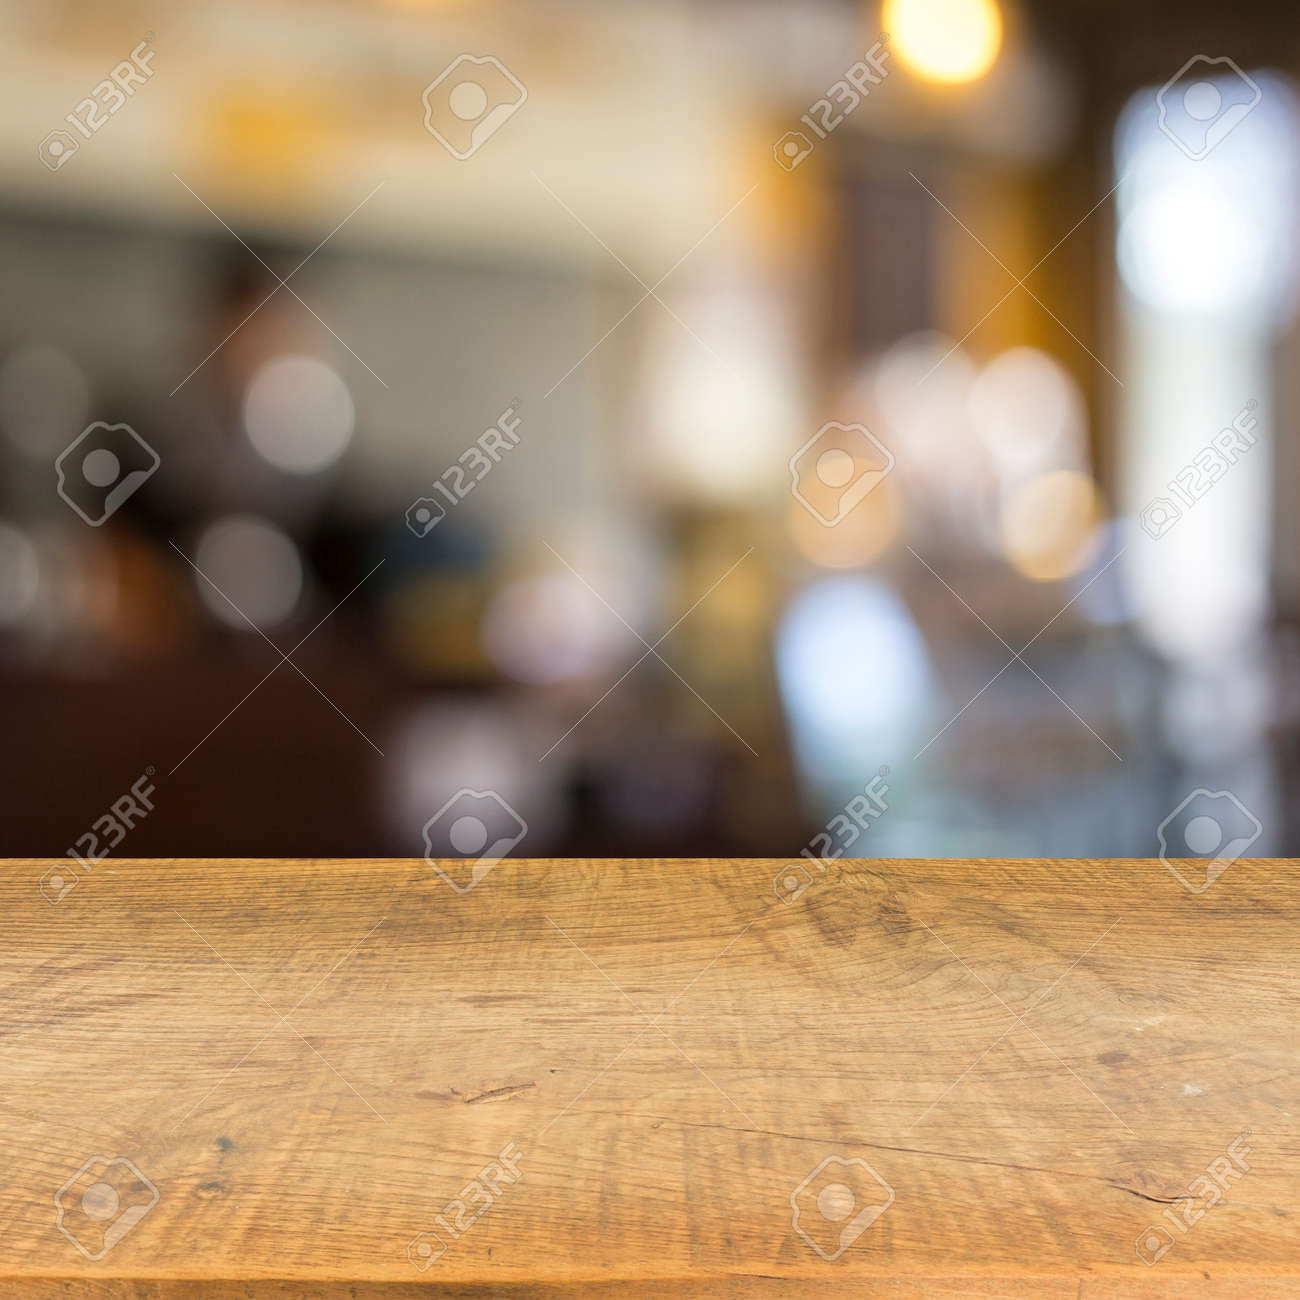 Blur cafe and wood floor texture background - 42054800